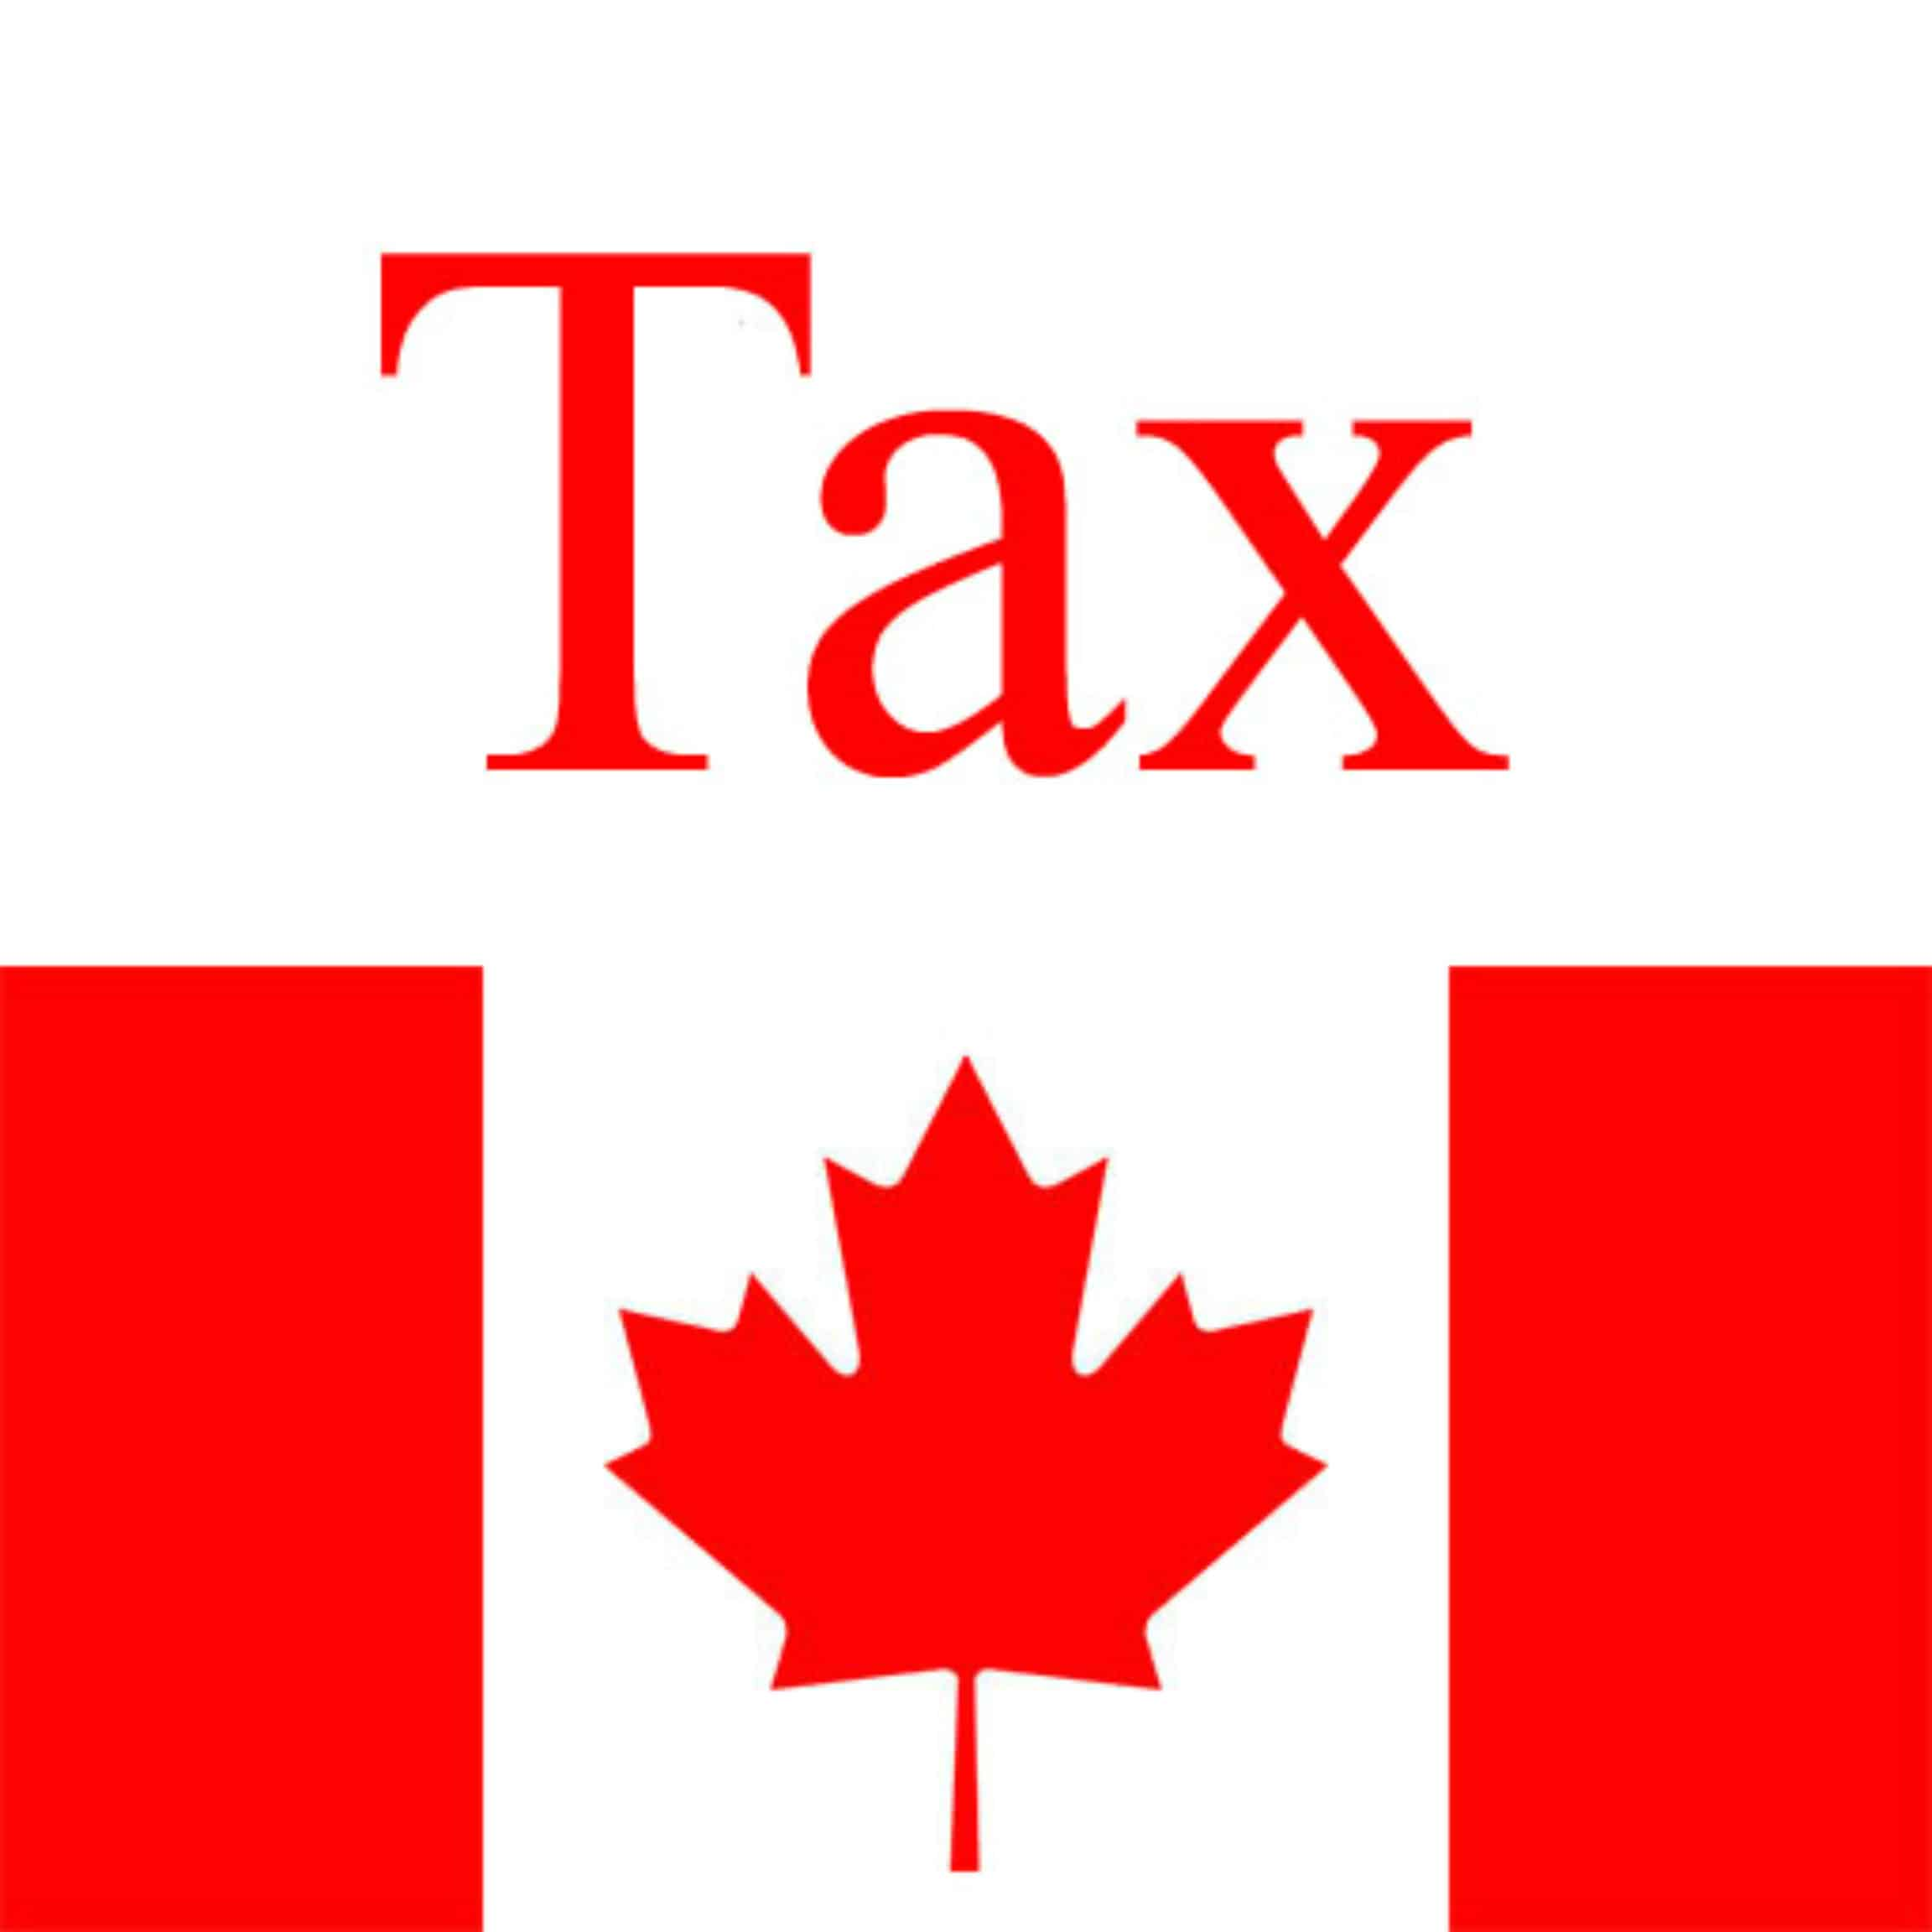 Cra Tax Return Filed But No Money To Pay